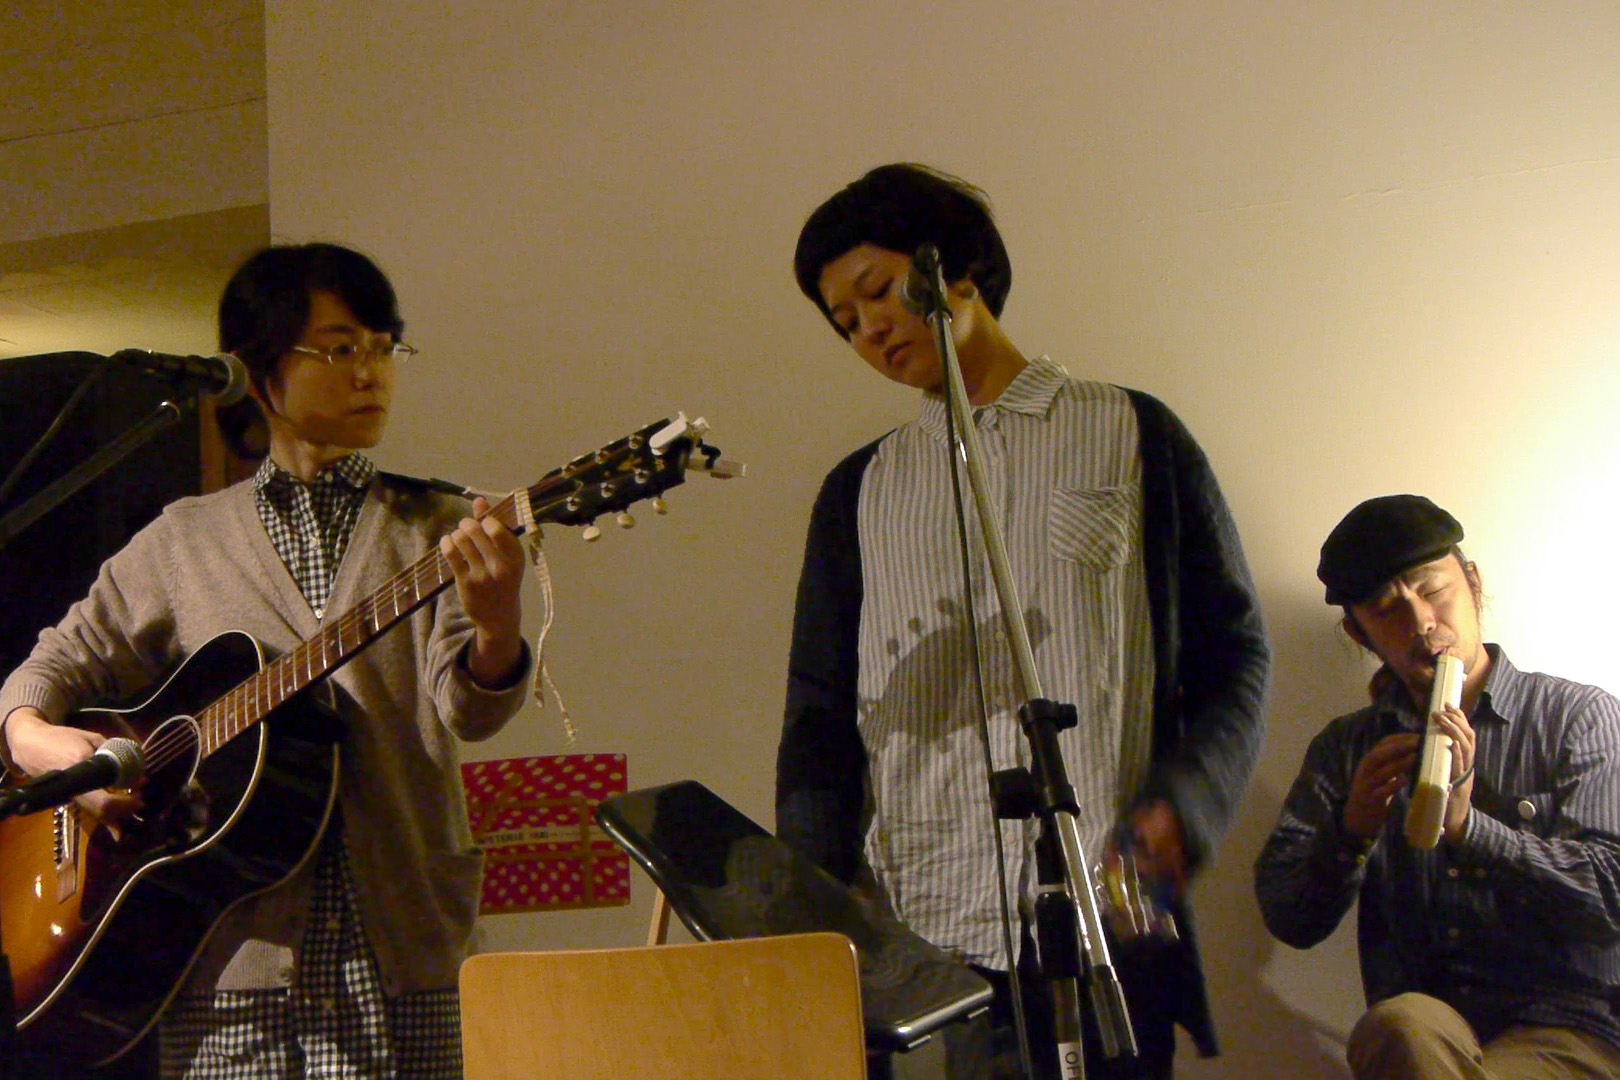 萬人音樂堂Presents レコ発ライブツアー in 沖縄 2012 OKINAWA HARMLESS @ 沖縄 Cafe & Dining Bar THREE_c0000587_19464613.jpg